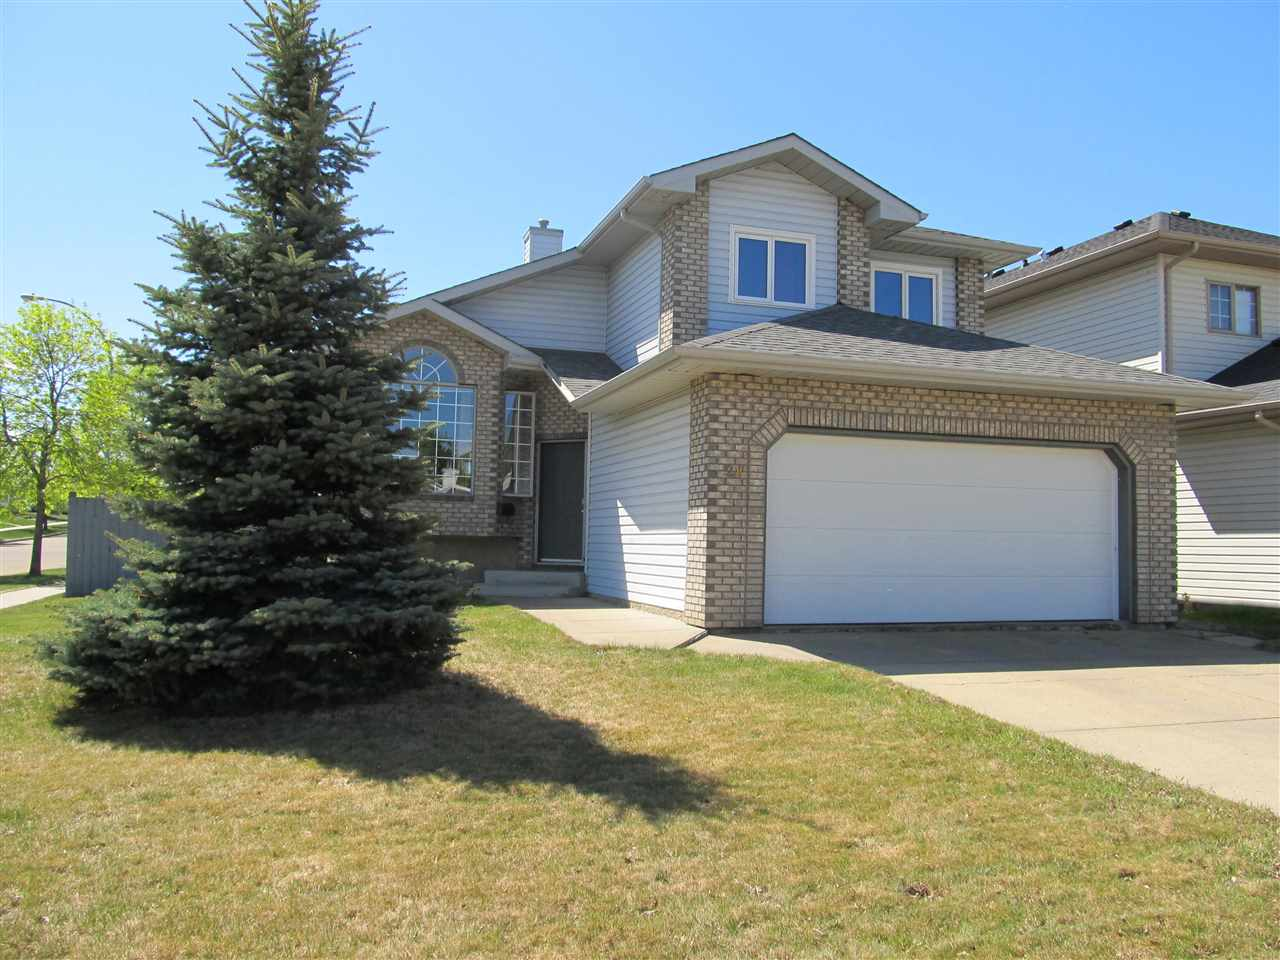 28 CACTUS Way, 3 bed, 2.1 bath, at $422,900